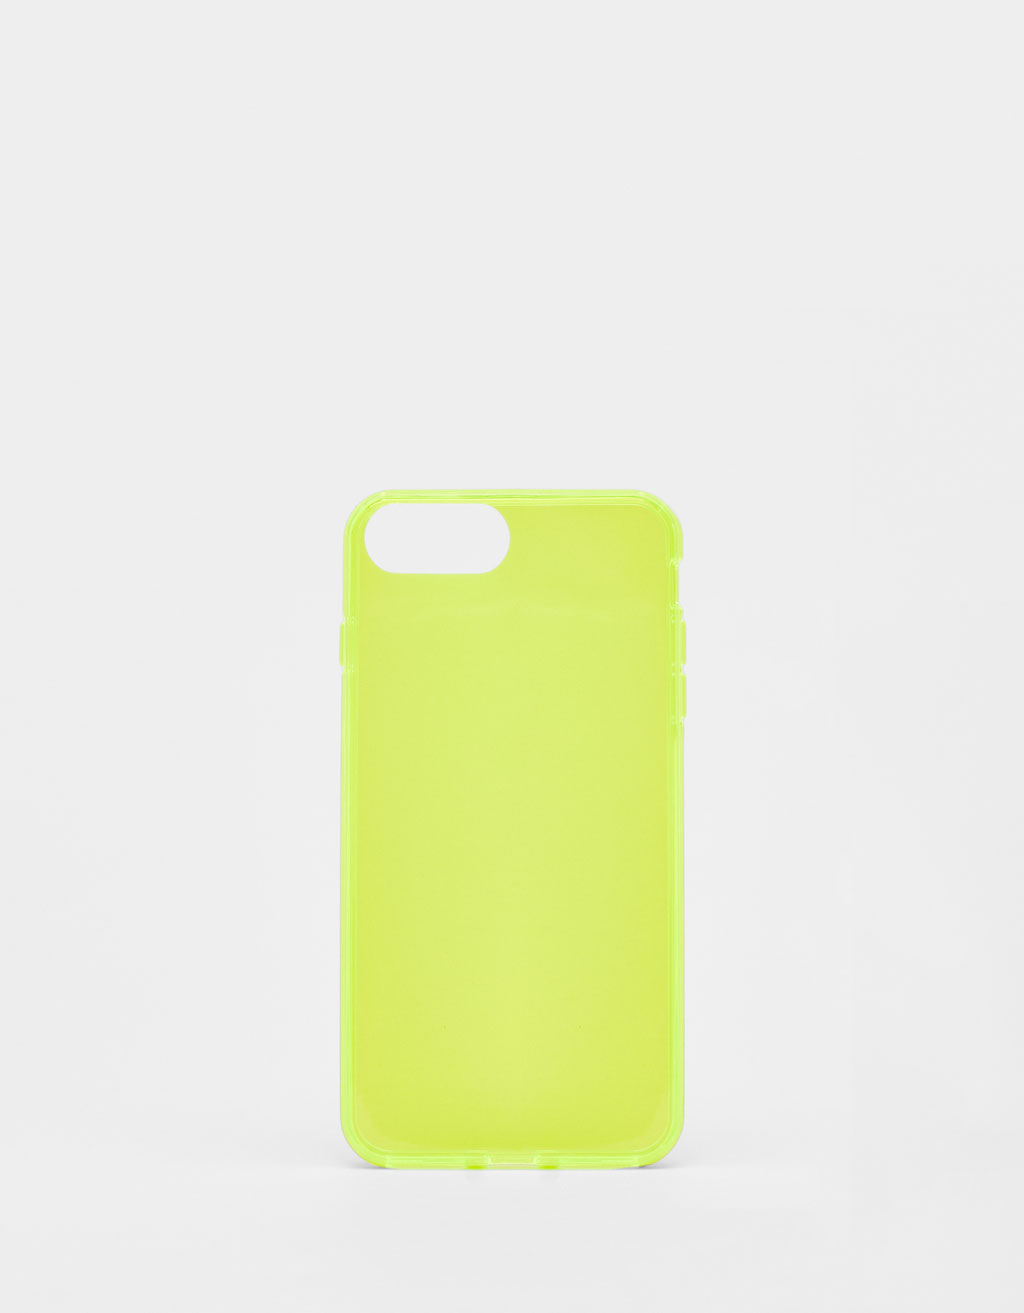 Carcasa transparente fluor iPhone 6 plus / 7 plus / 8 plus